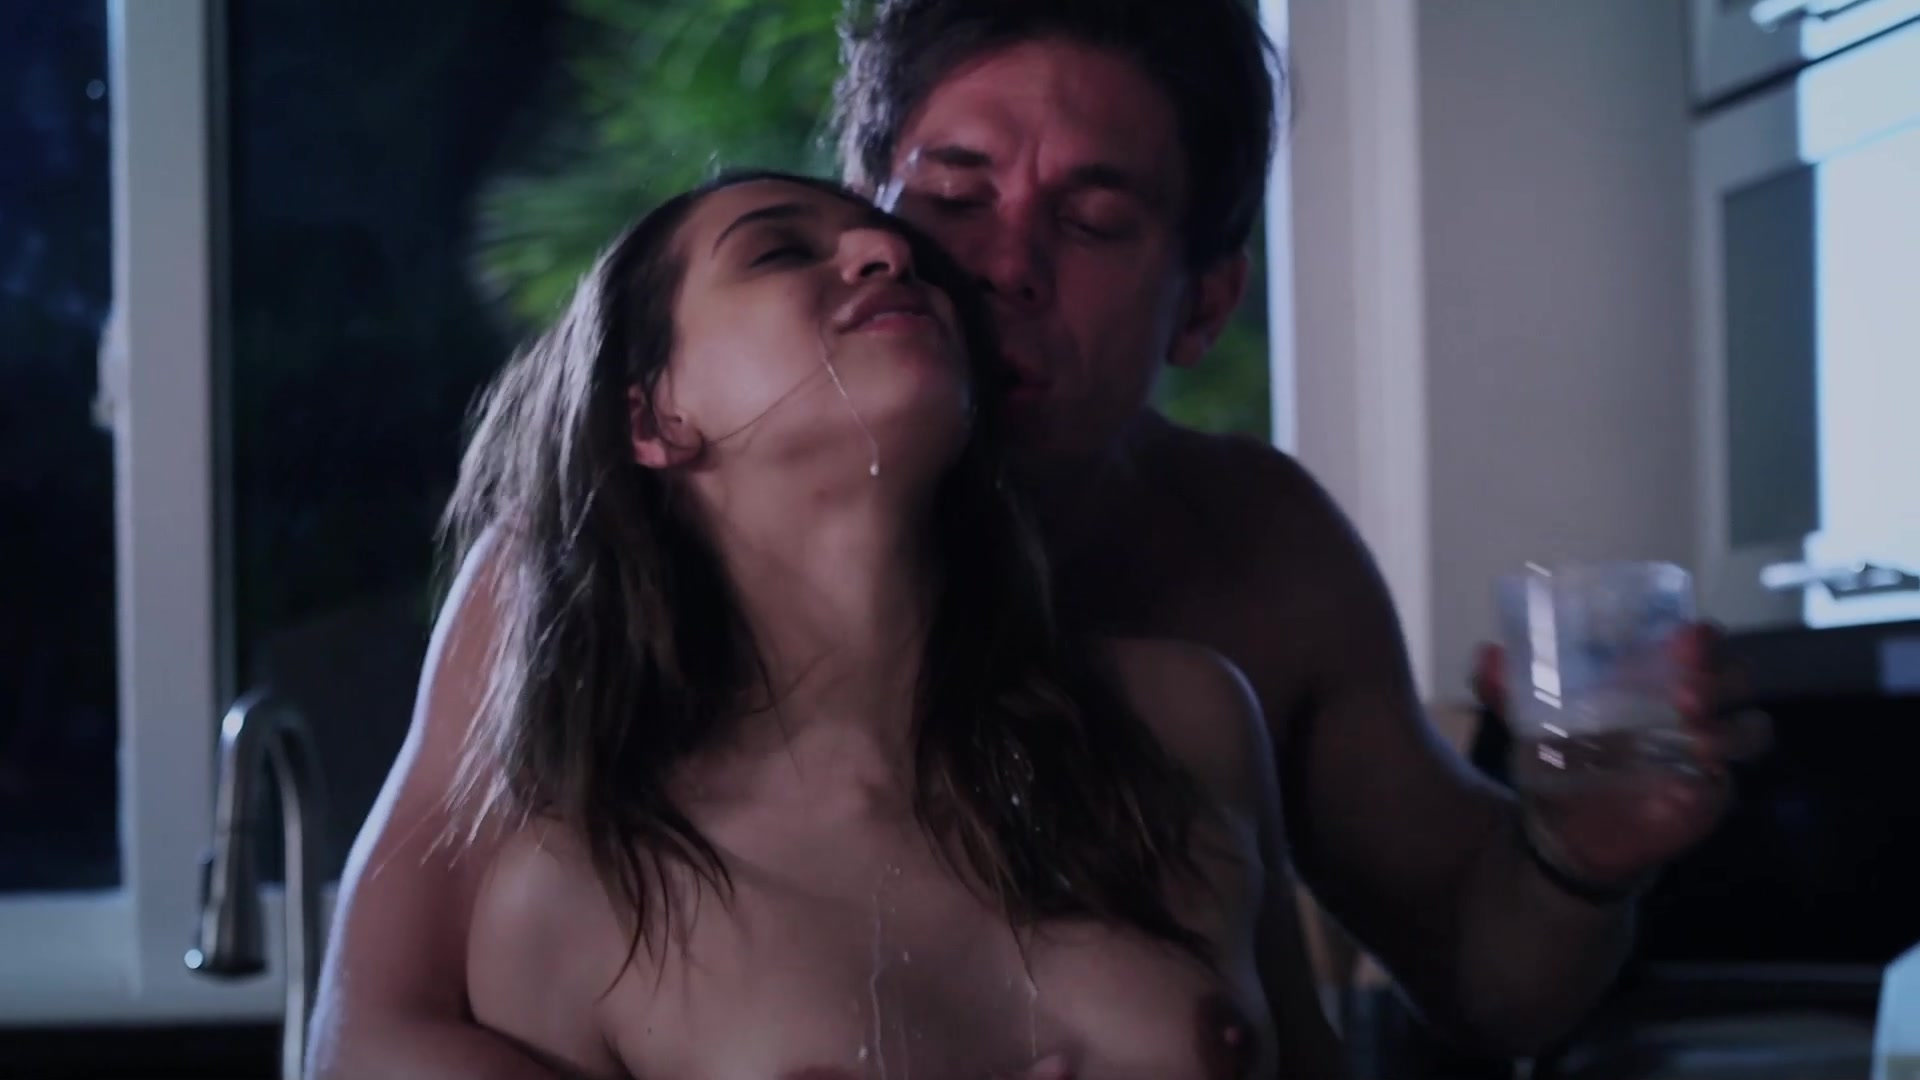 Scene with Mick Blue and Sara Luvv - image 17 out of 20